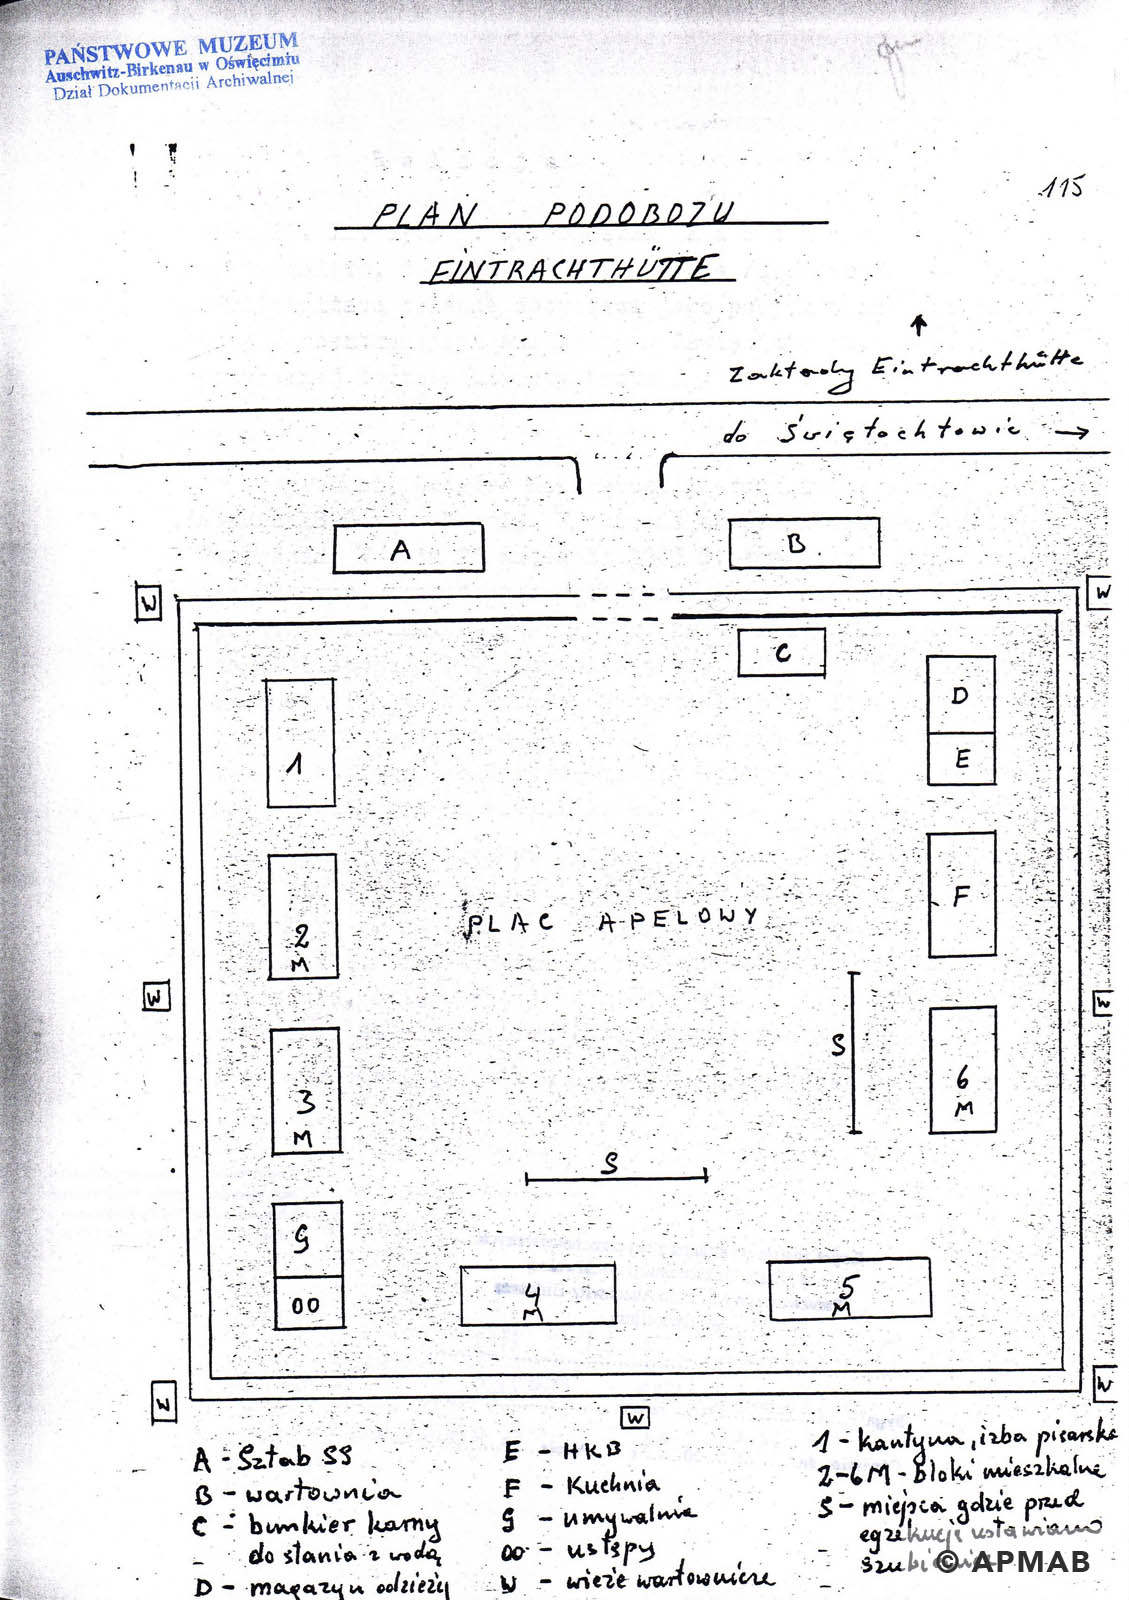 Drawing of Eintrachthütte sub camp by fomer prisoner D APMAB